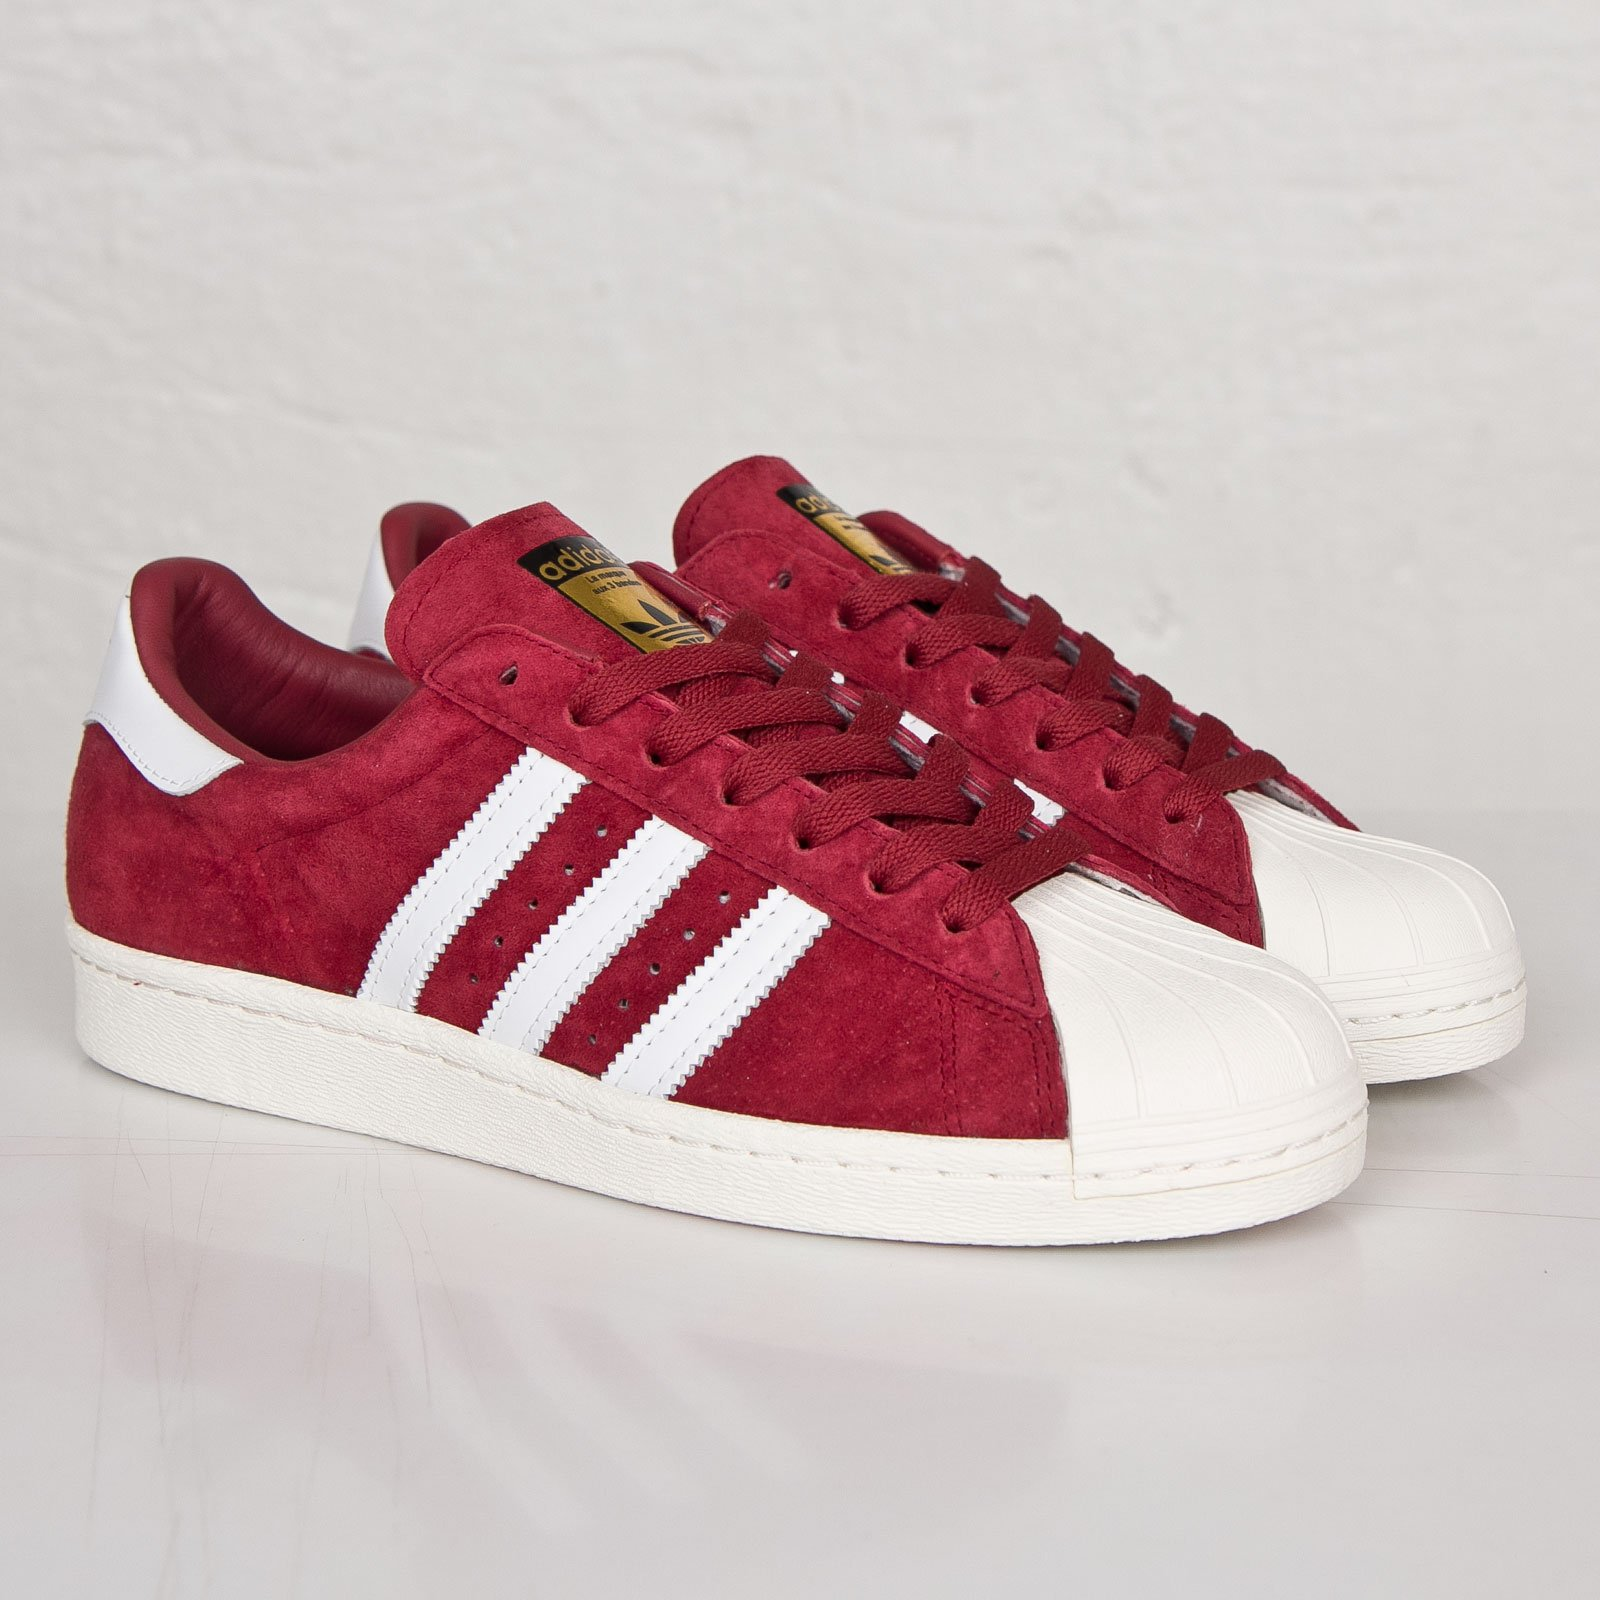 size 40 29b80 4ddb0 adidas Superstar 80s Deluxe Suede